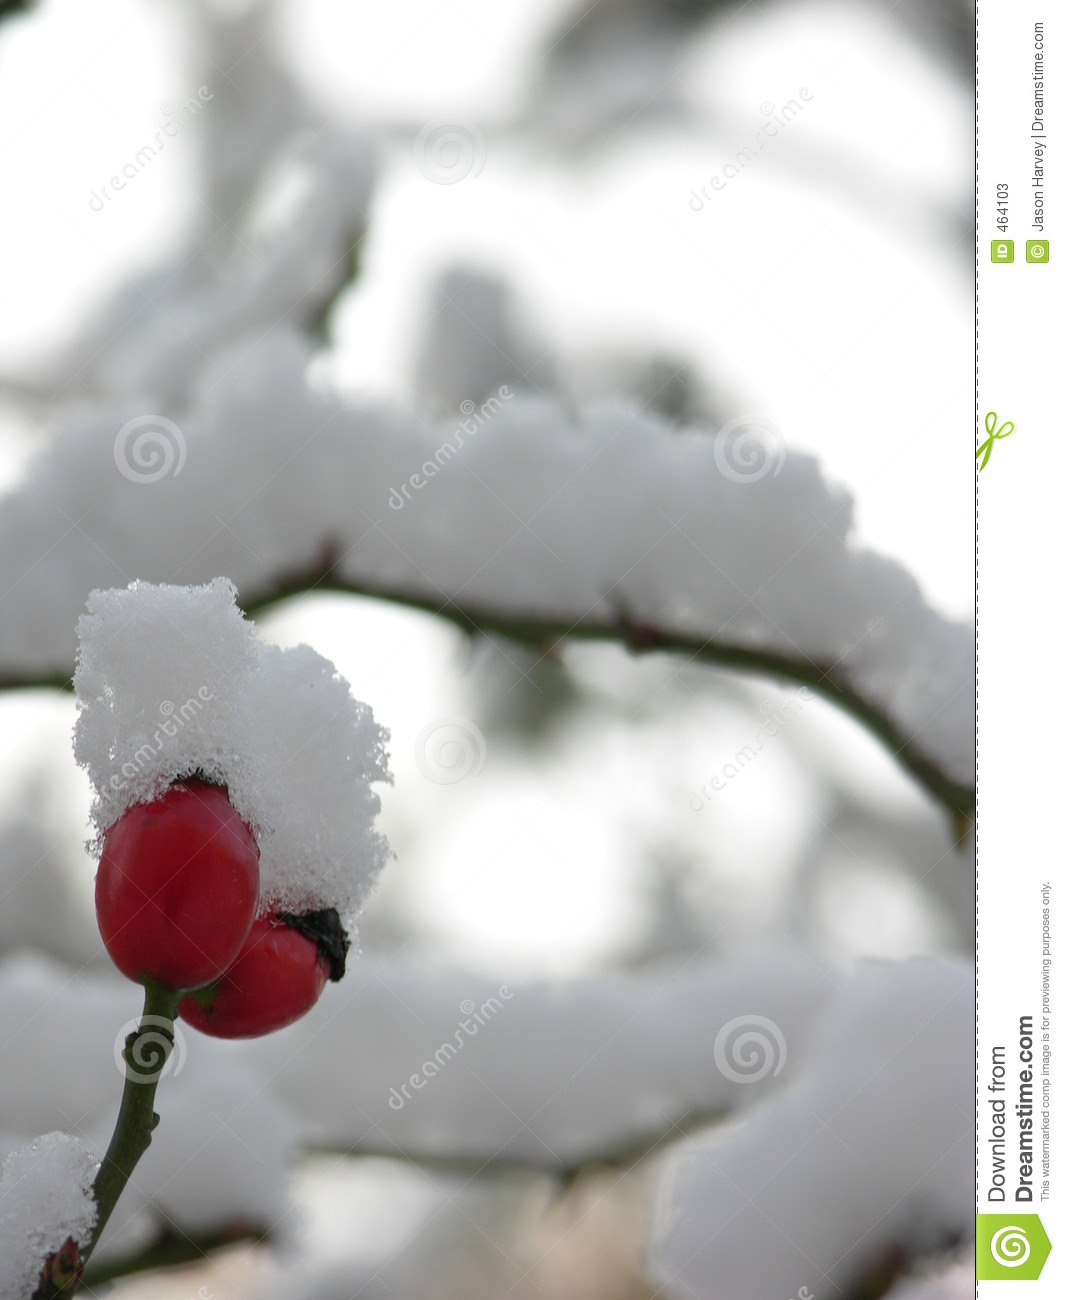 Download Red Berry in Snow stock image. Image of rose, cold, winter - 464103